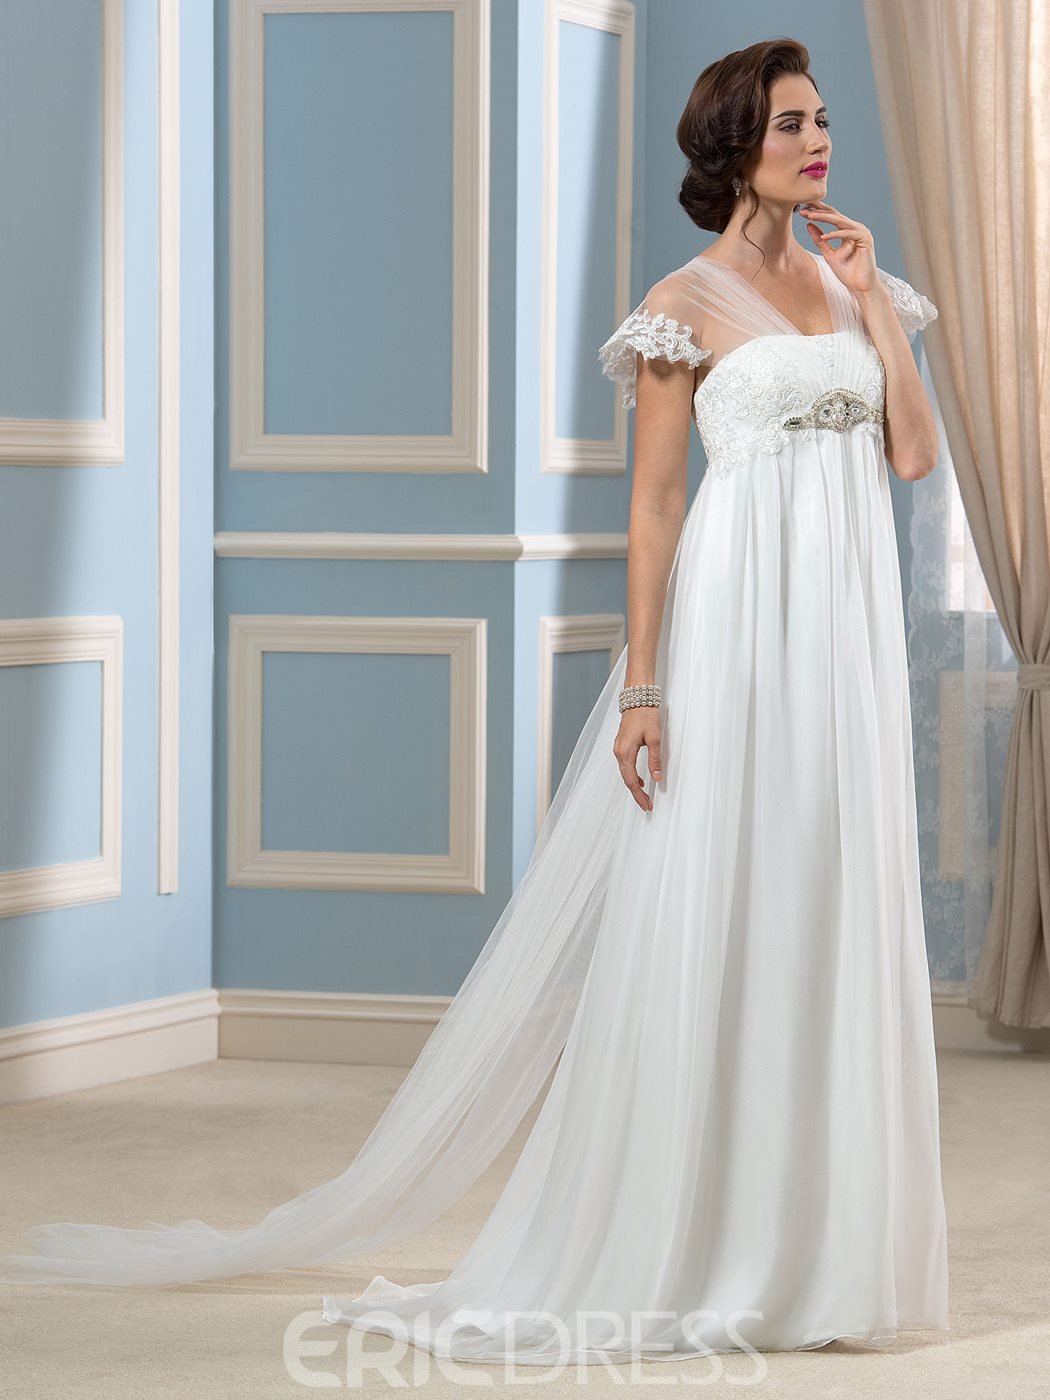 Ericdress Simple V Neck Appliques Beading Empire Wedding Dress